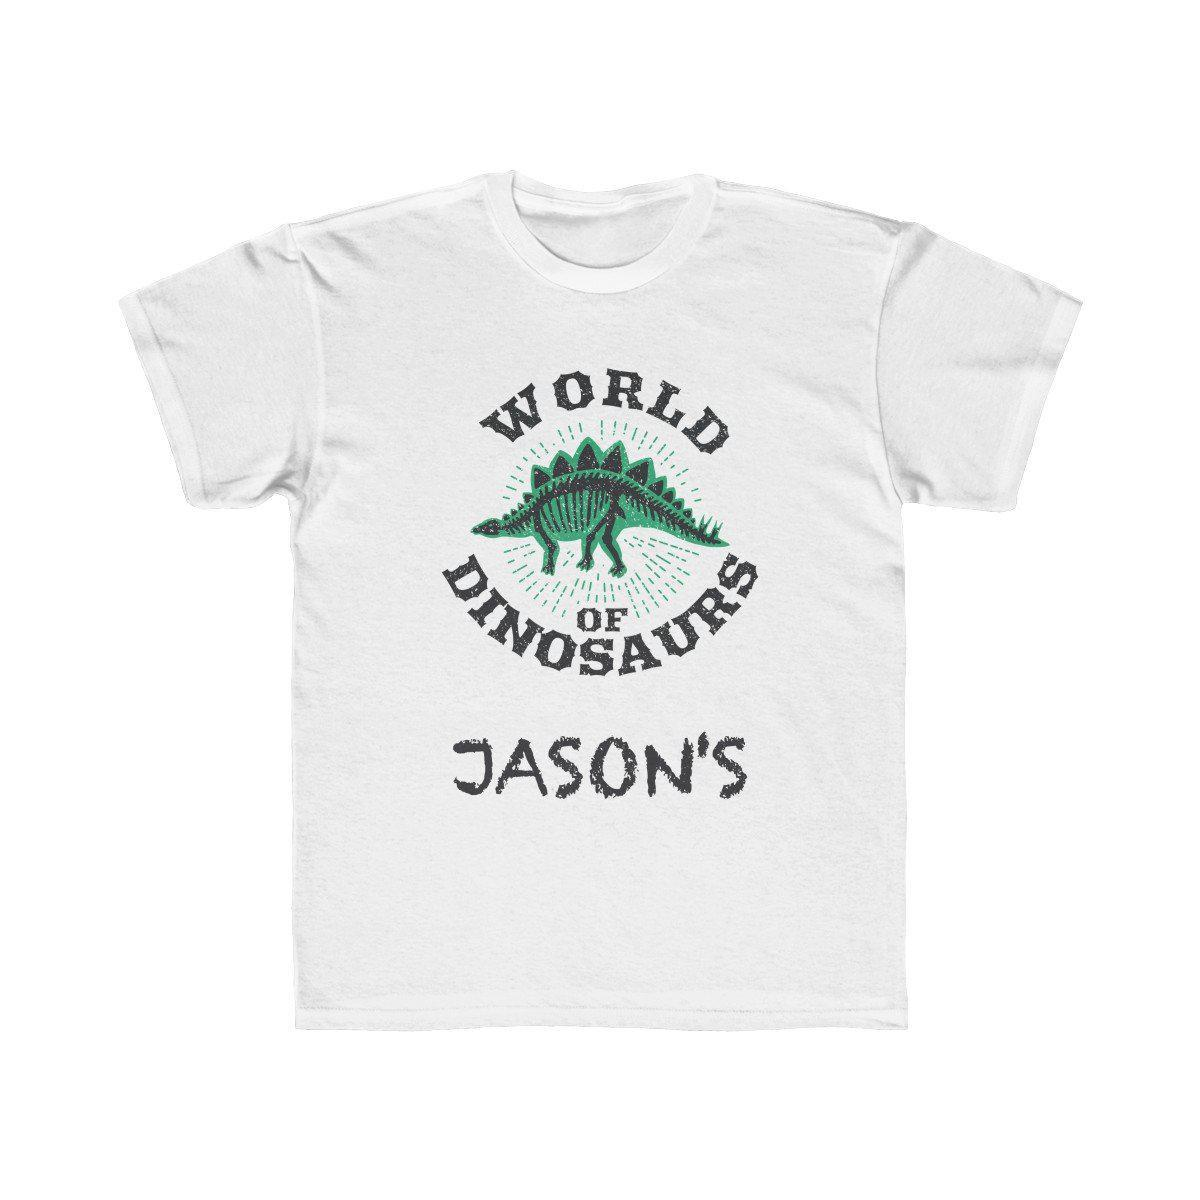 World Of Dinosaurs T-Shirt - Personalized